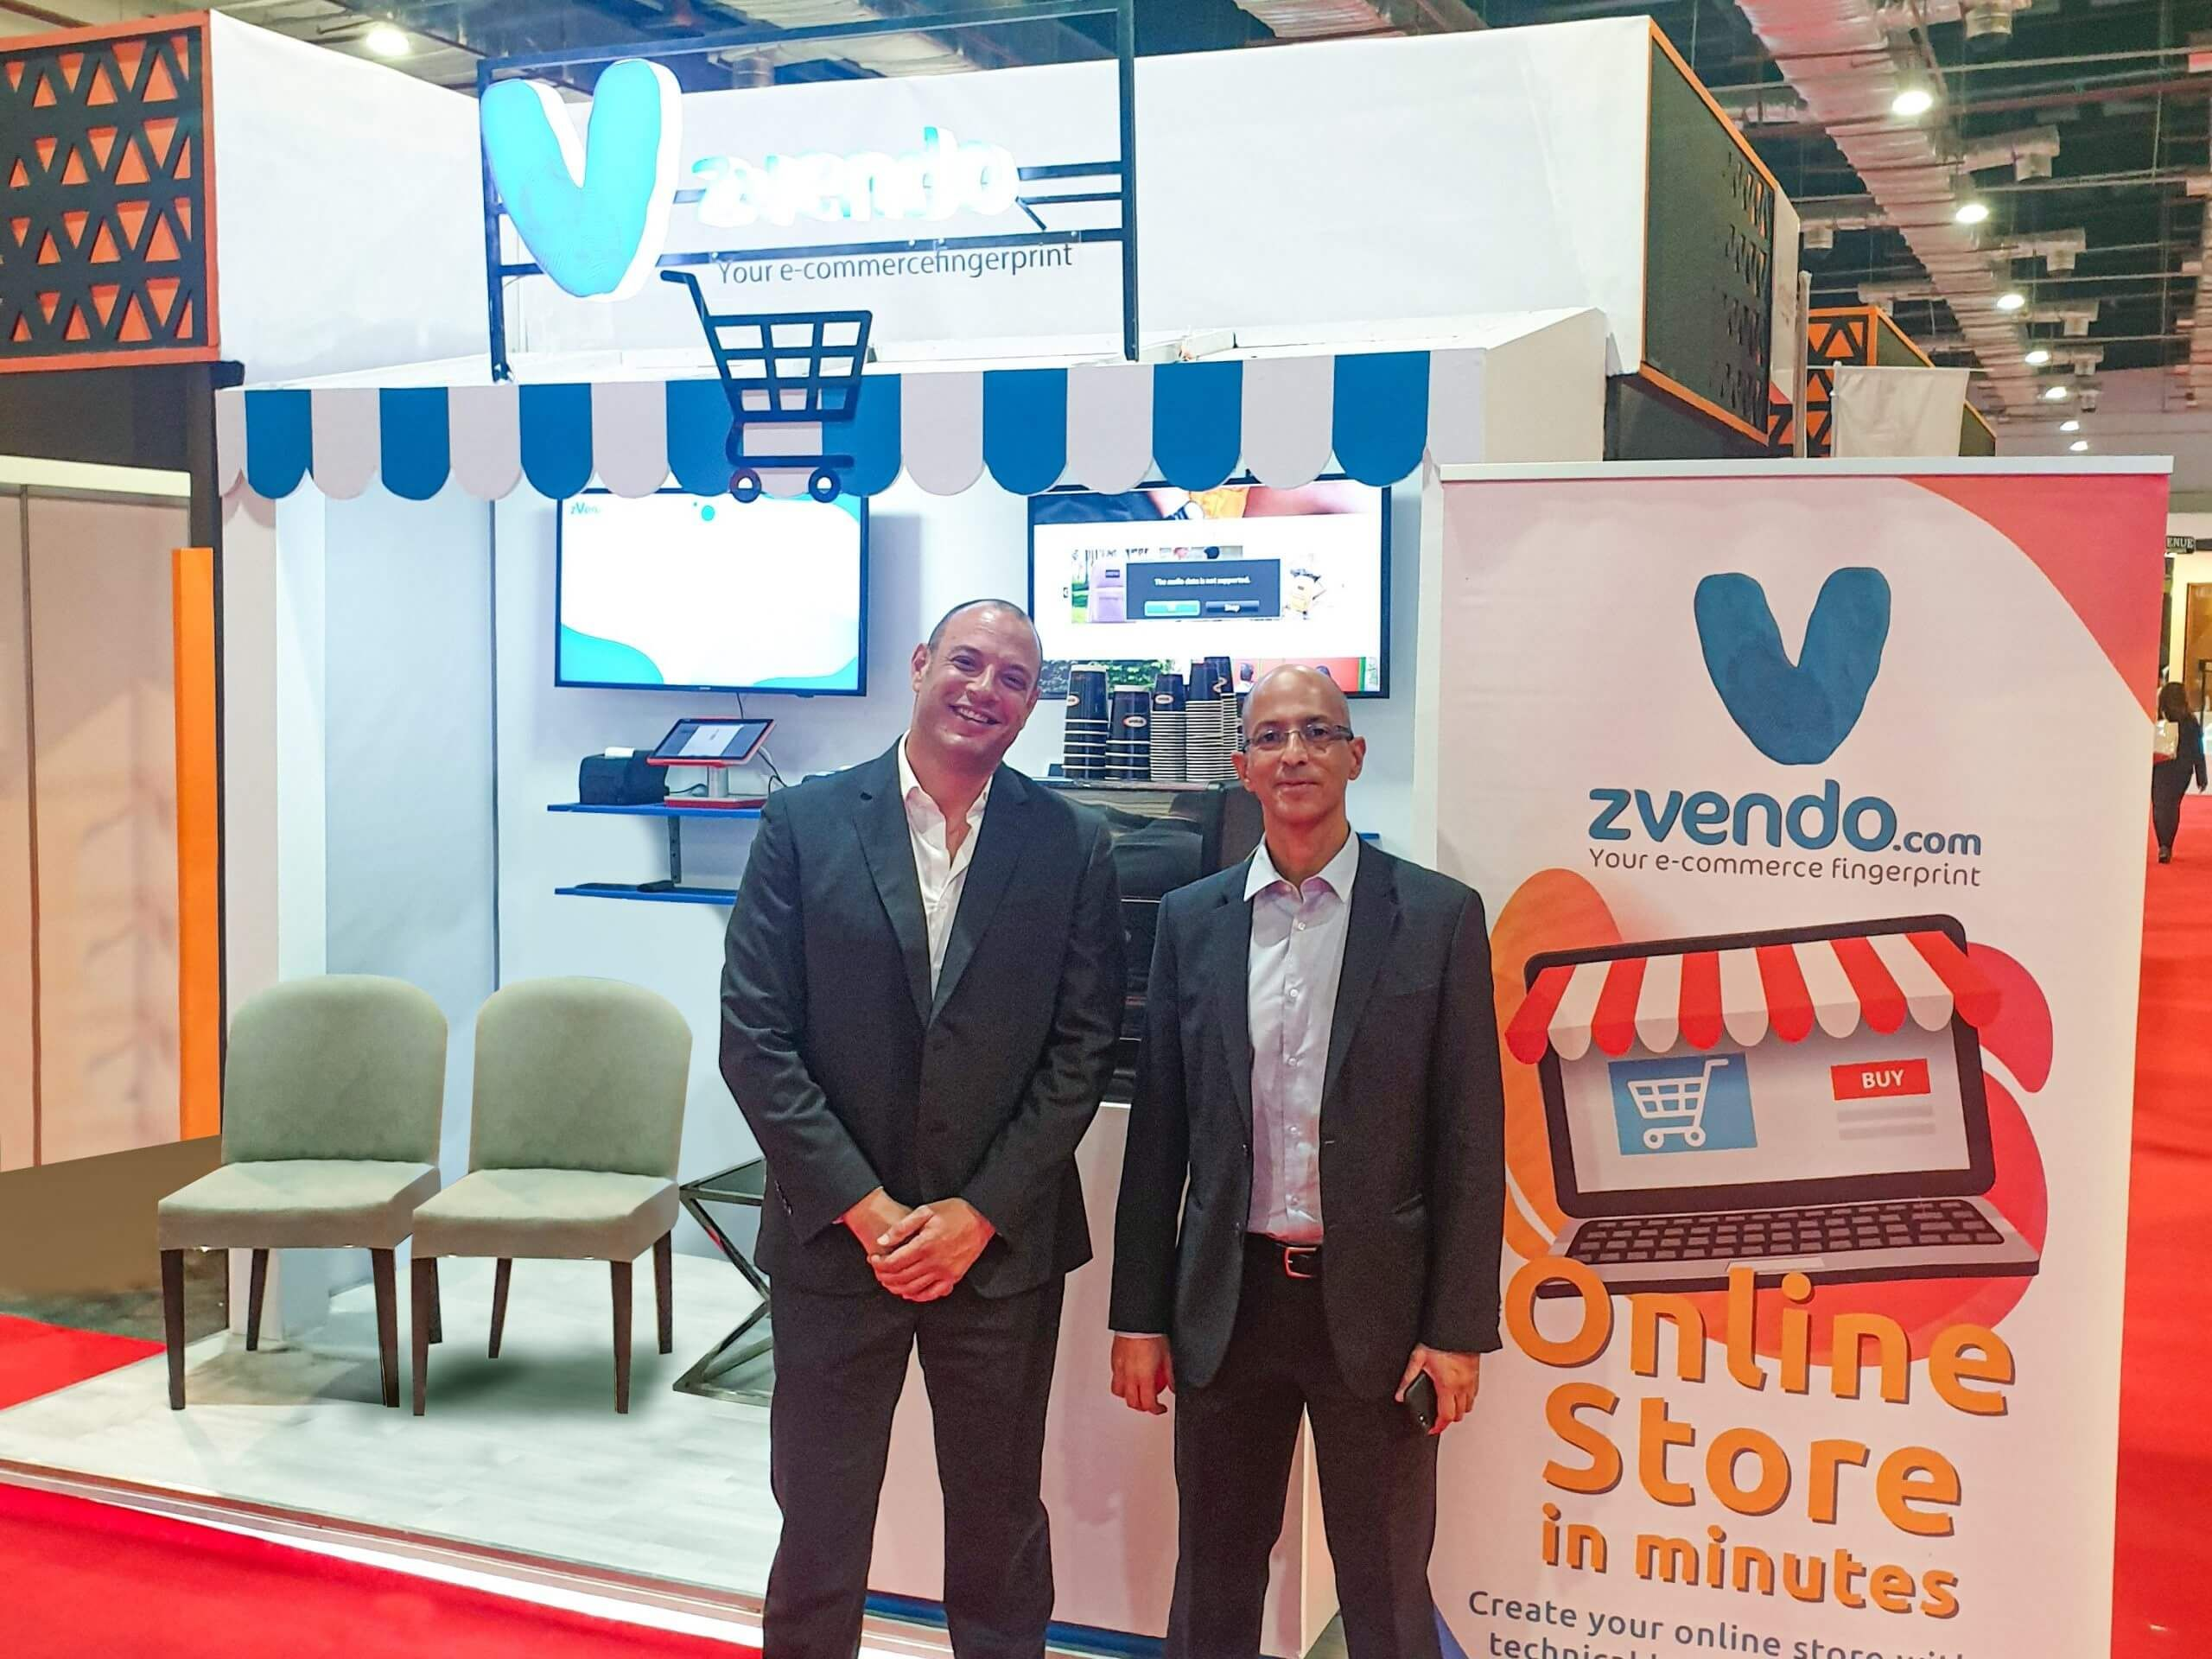 zVendo raises six-figure Seed round for expansion